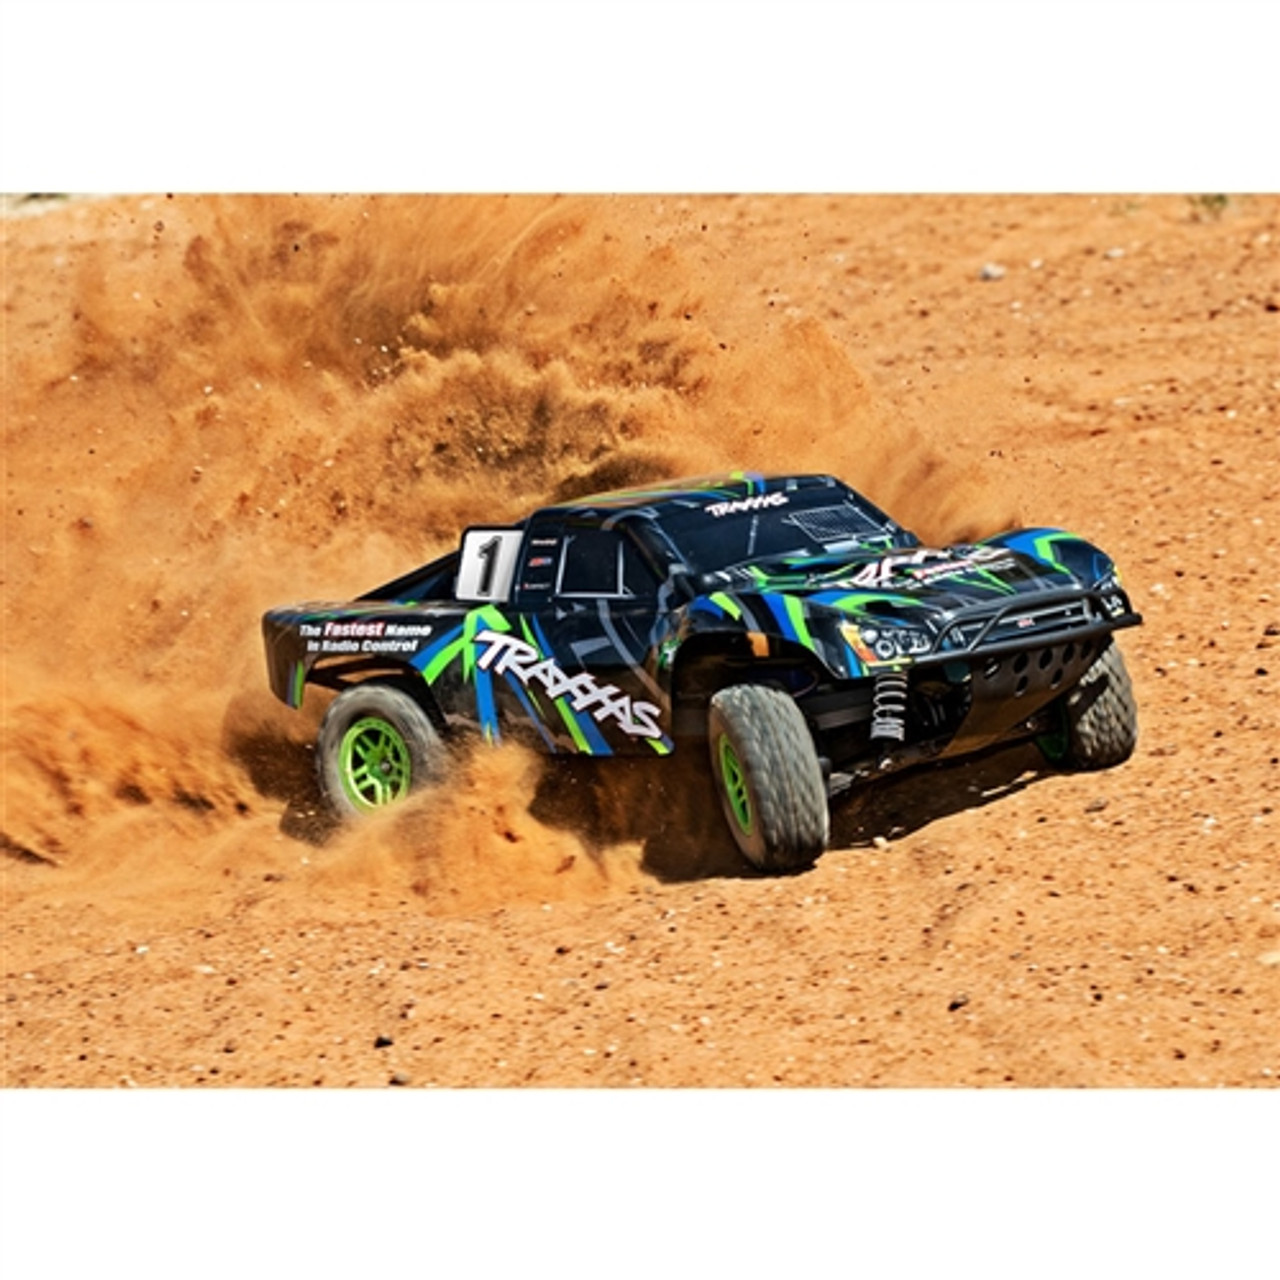 Traxxas Slash 4x4 Brushed Short Course Truck Rtr